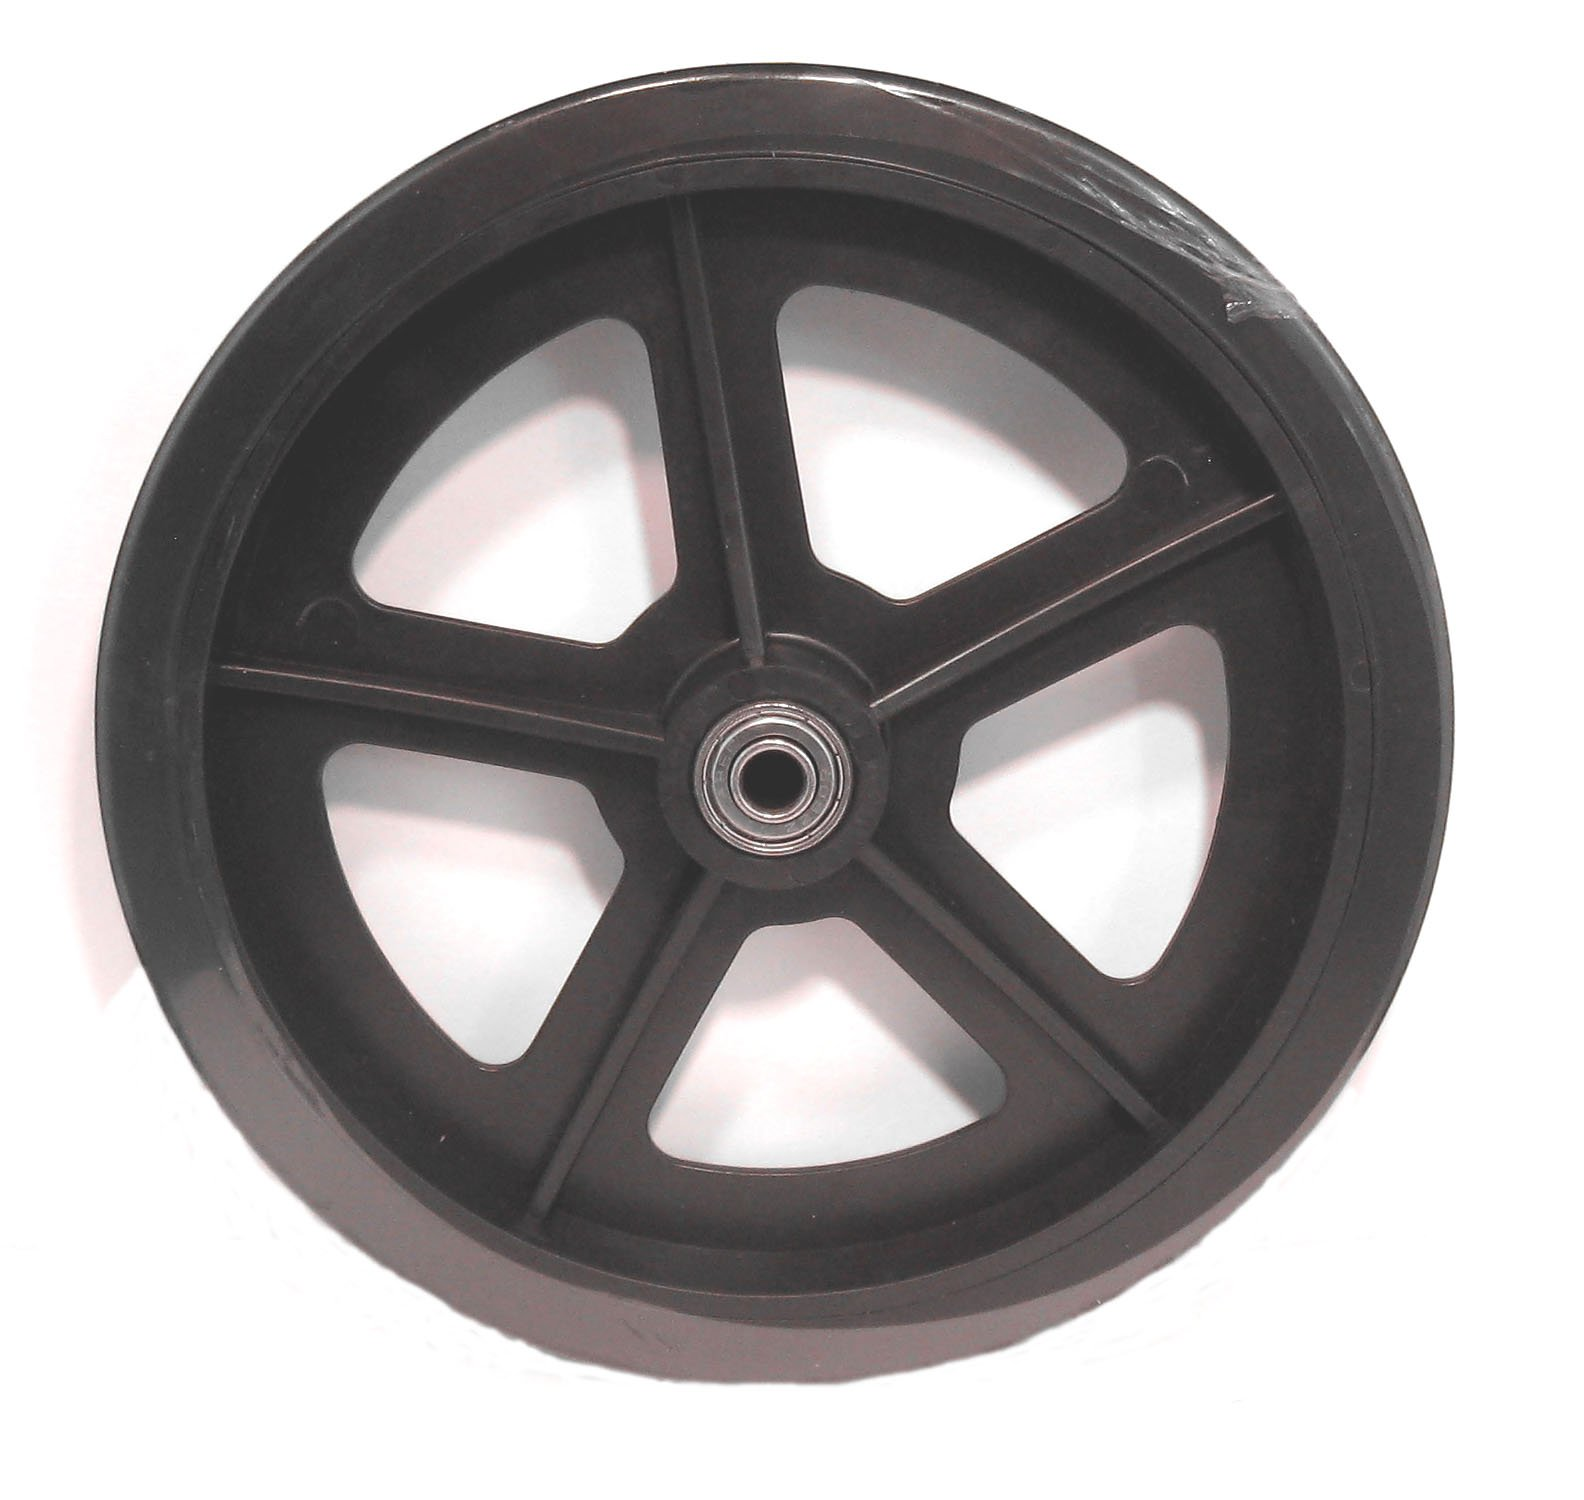 Roscoe Replacement Wheel 8 inch with Bearing Black - Part 90657 for Bariatric Rollator